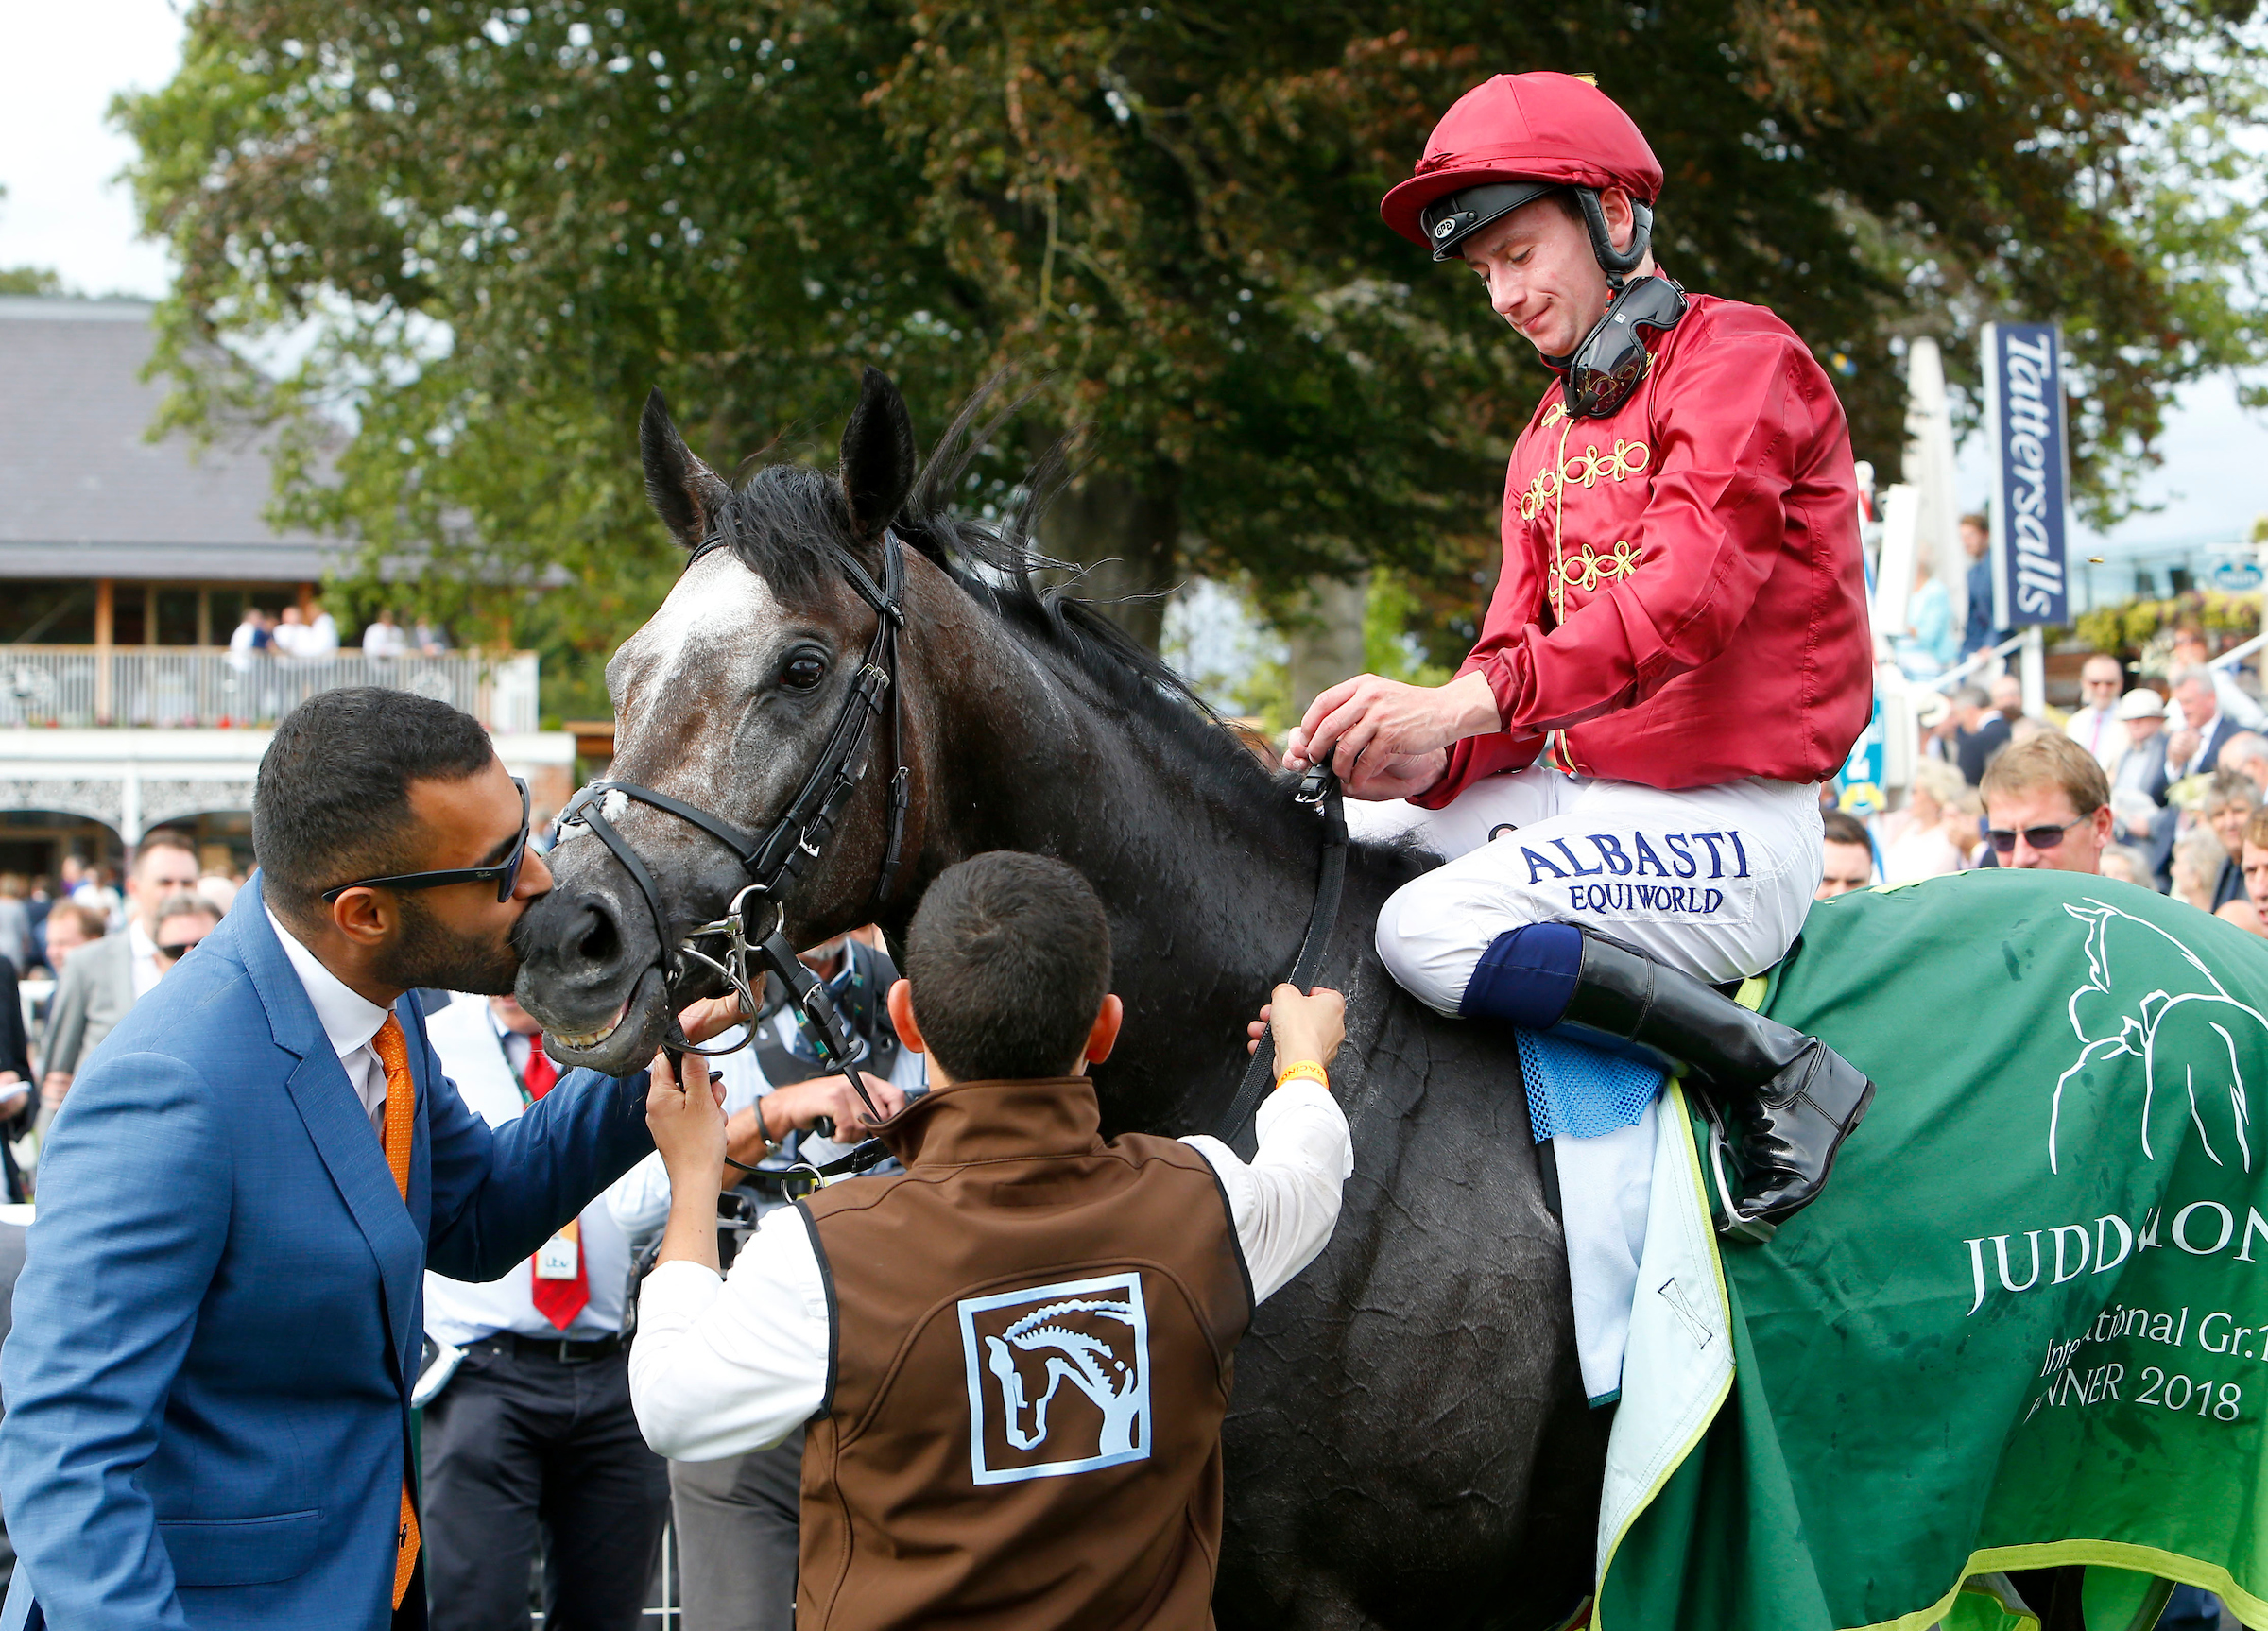 Sealed with a kiss: Sheikh Fahad celebates the victory of Roaring Lion. (Focusonracing)